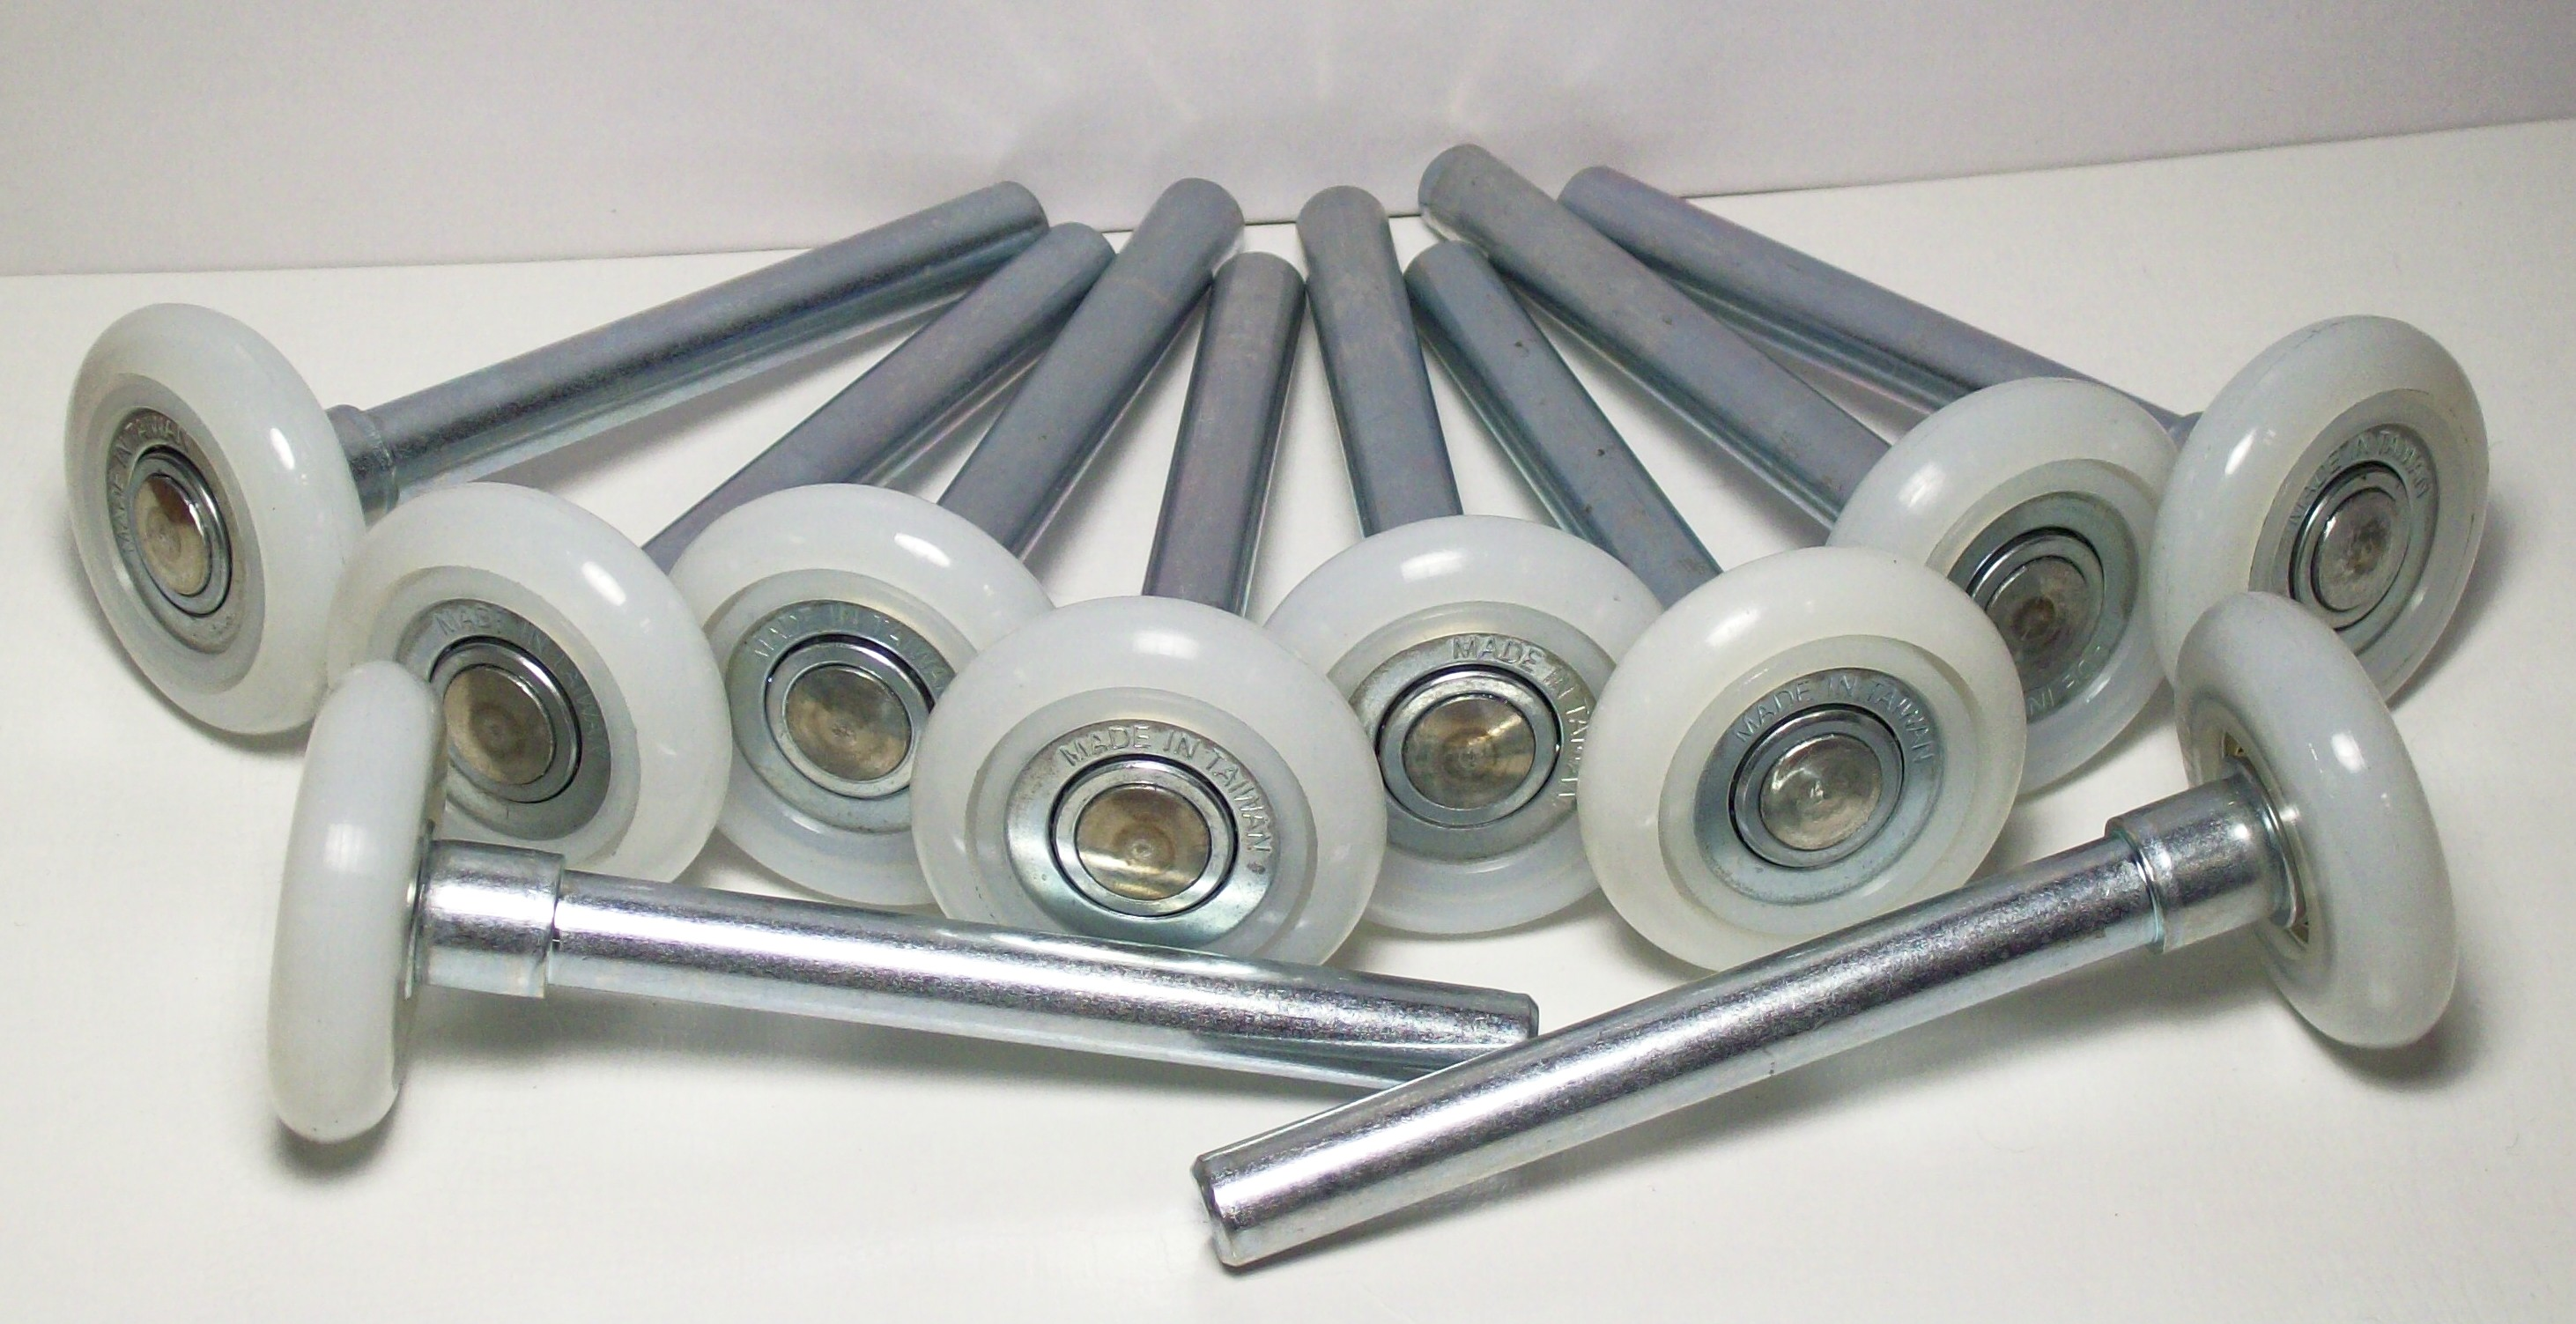 Garage door rollers - 2 Garage Door Roller 10 Pack 4 Inch Stem 13 Bearing